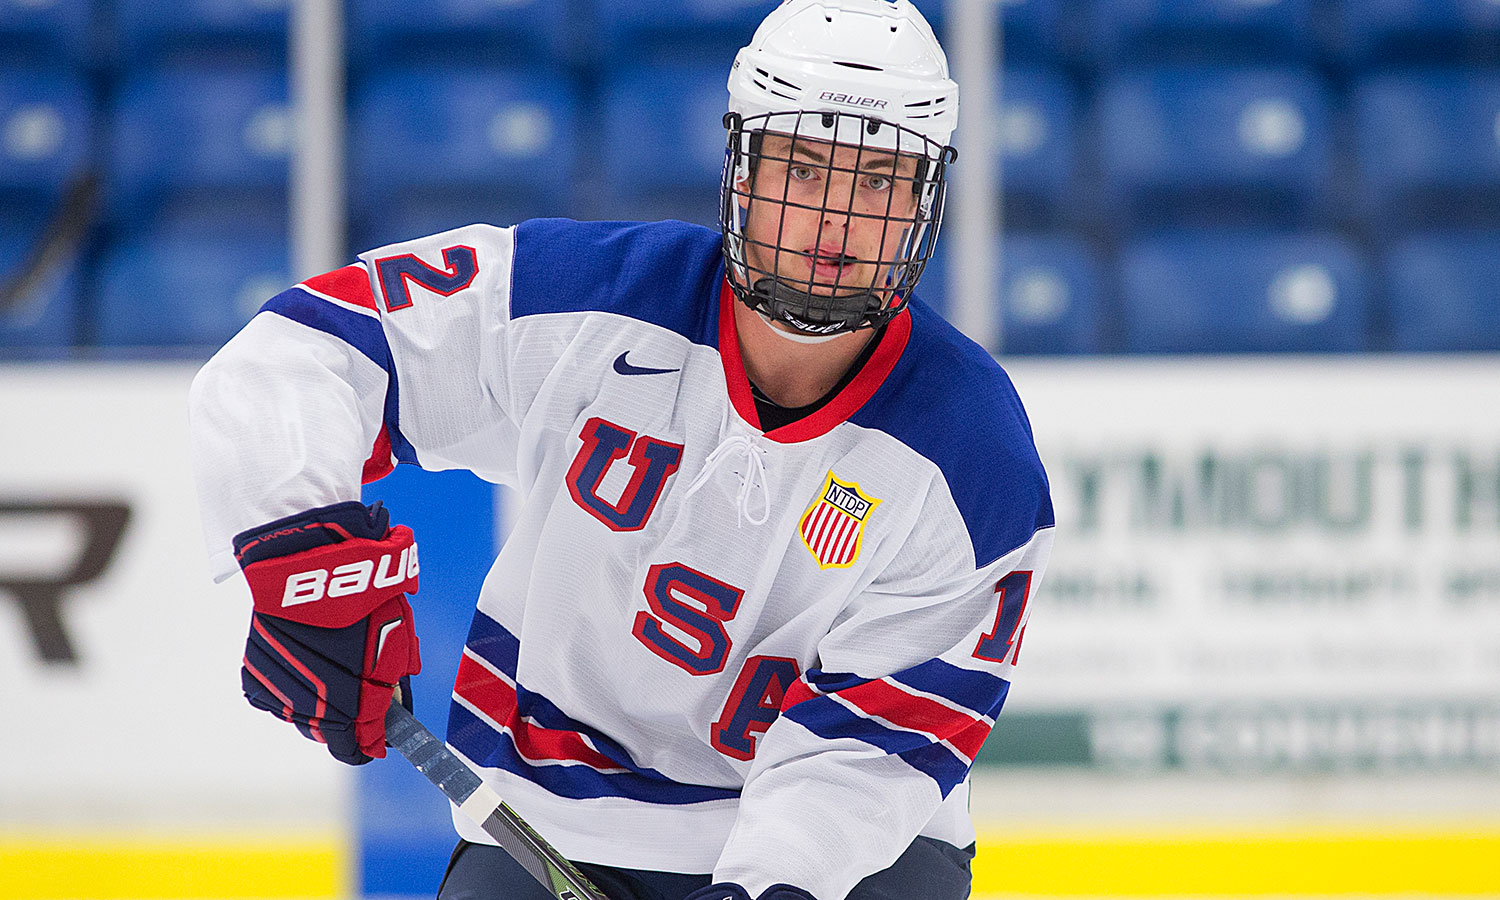 USA Hockey Unveiled The U.S. Junior Select Team Set To Compete In The World Junior A Challenge From December 11-17 In Bonnyville, Alberta.